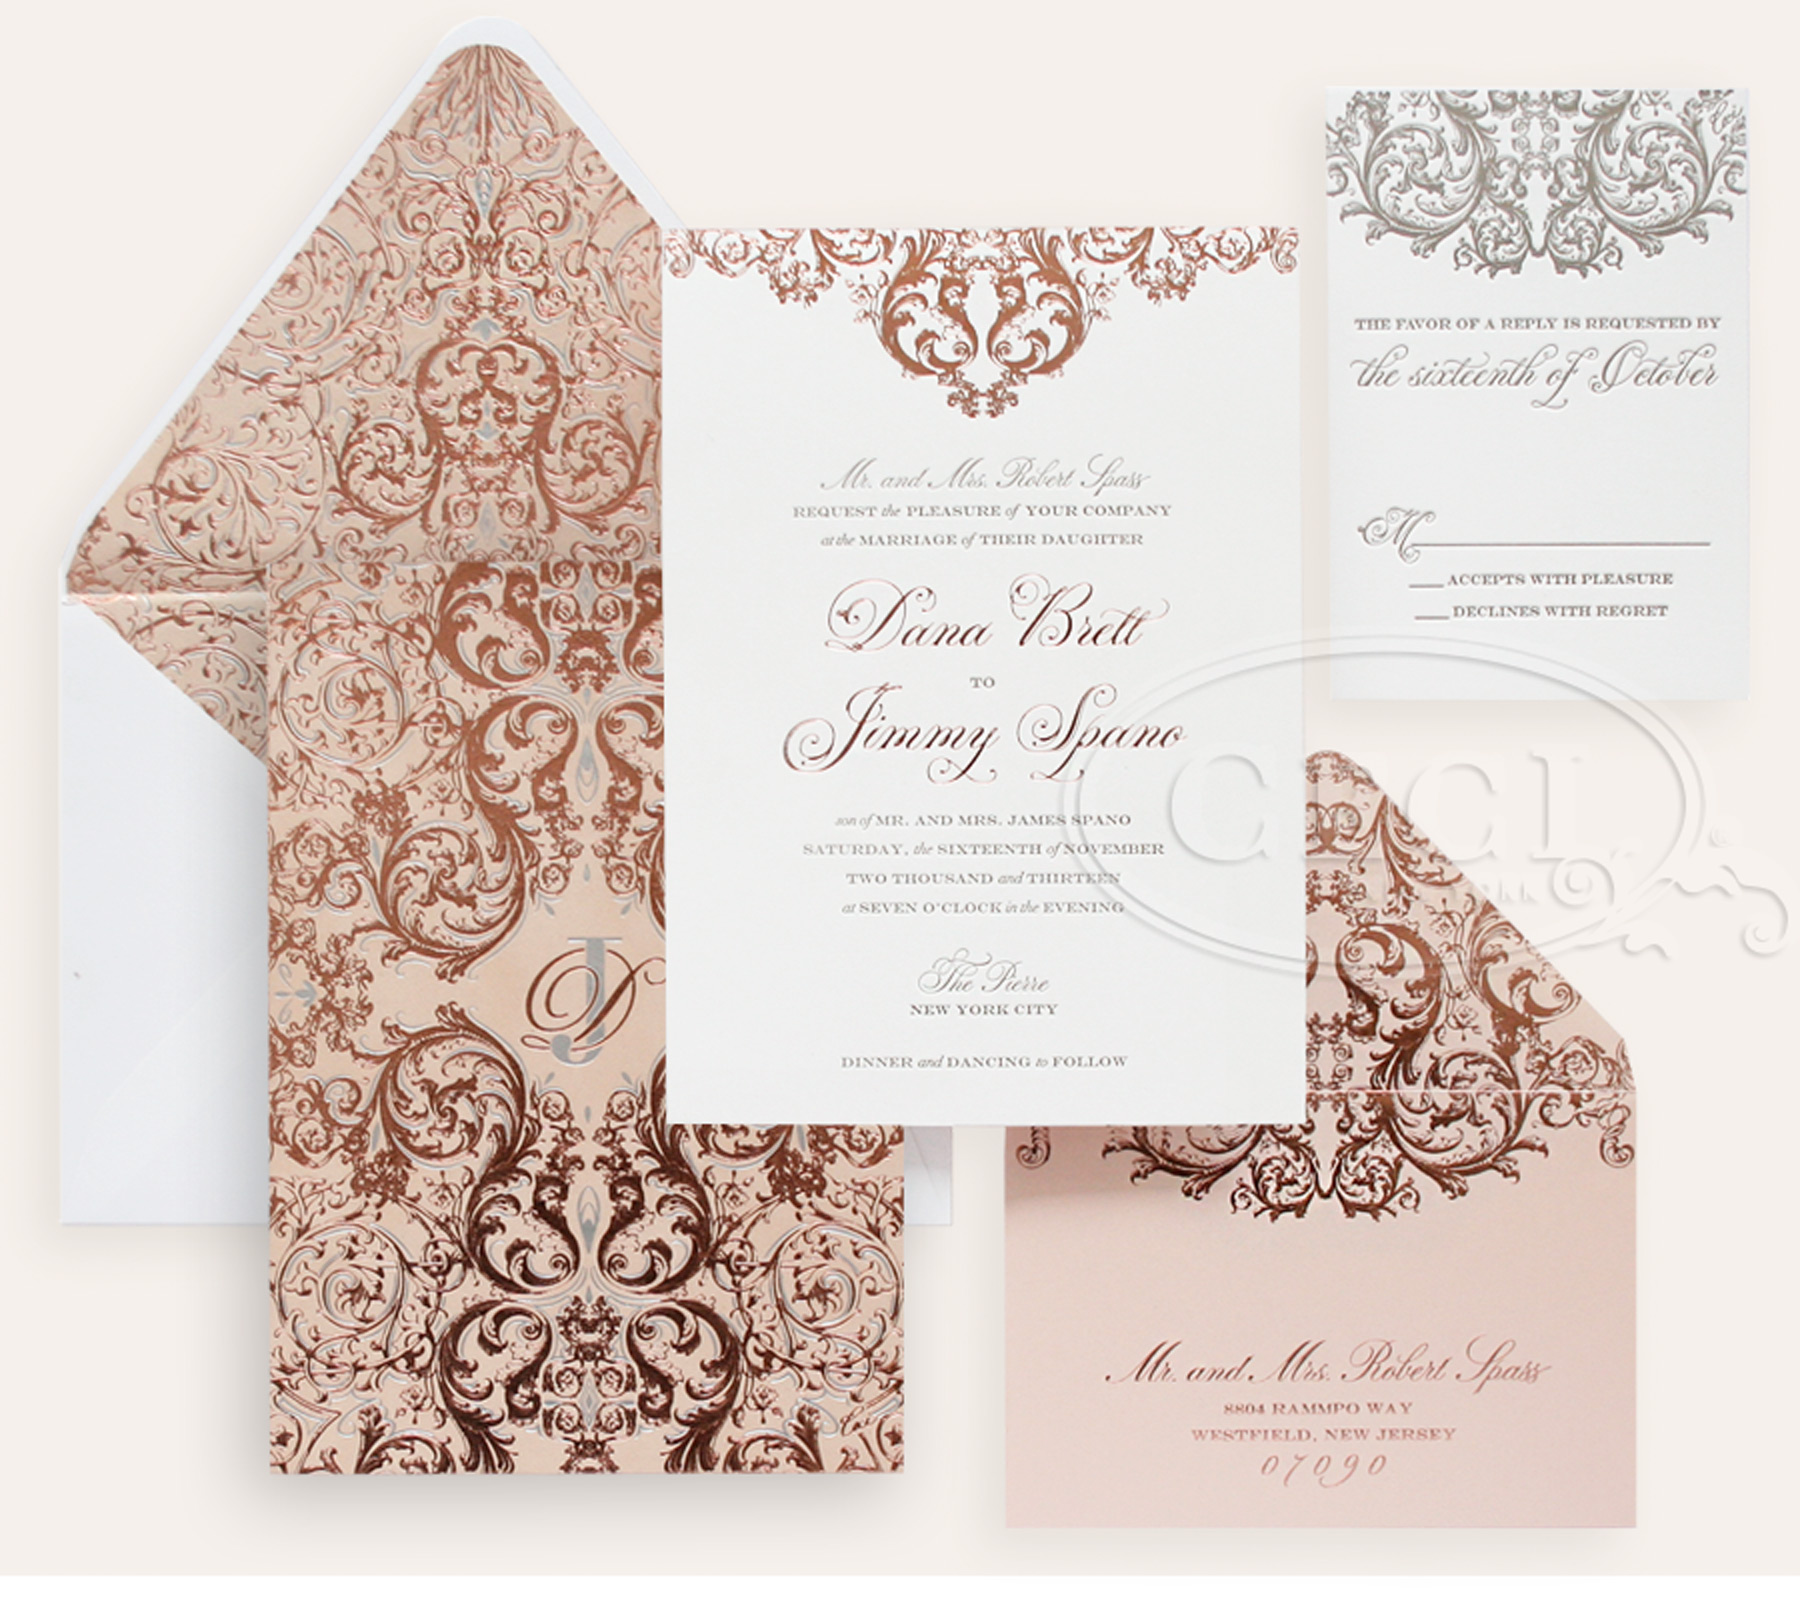 Nyc Themed Invitations is adorable invitation design